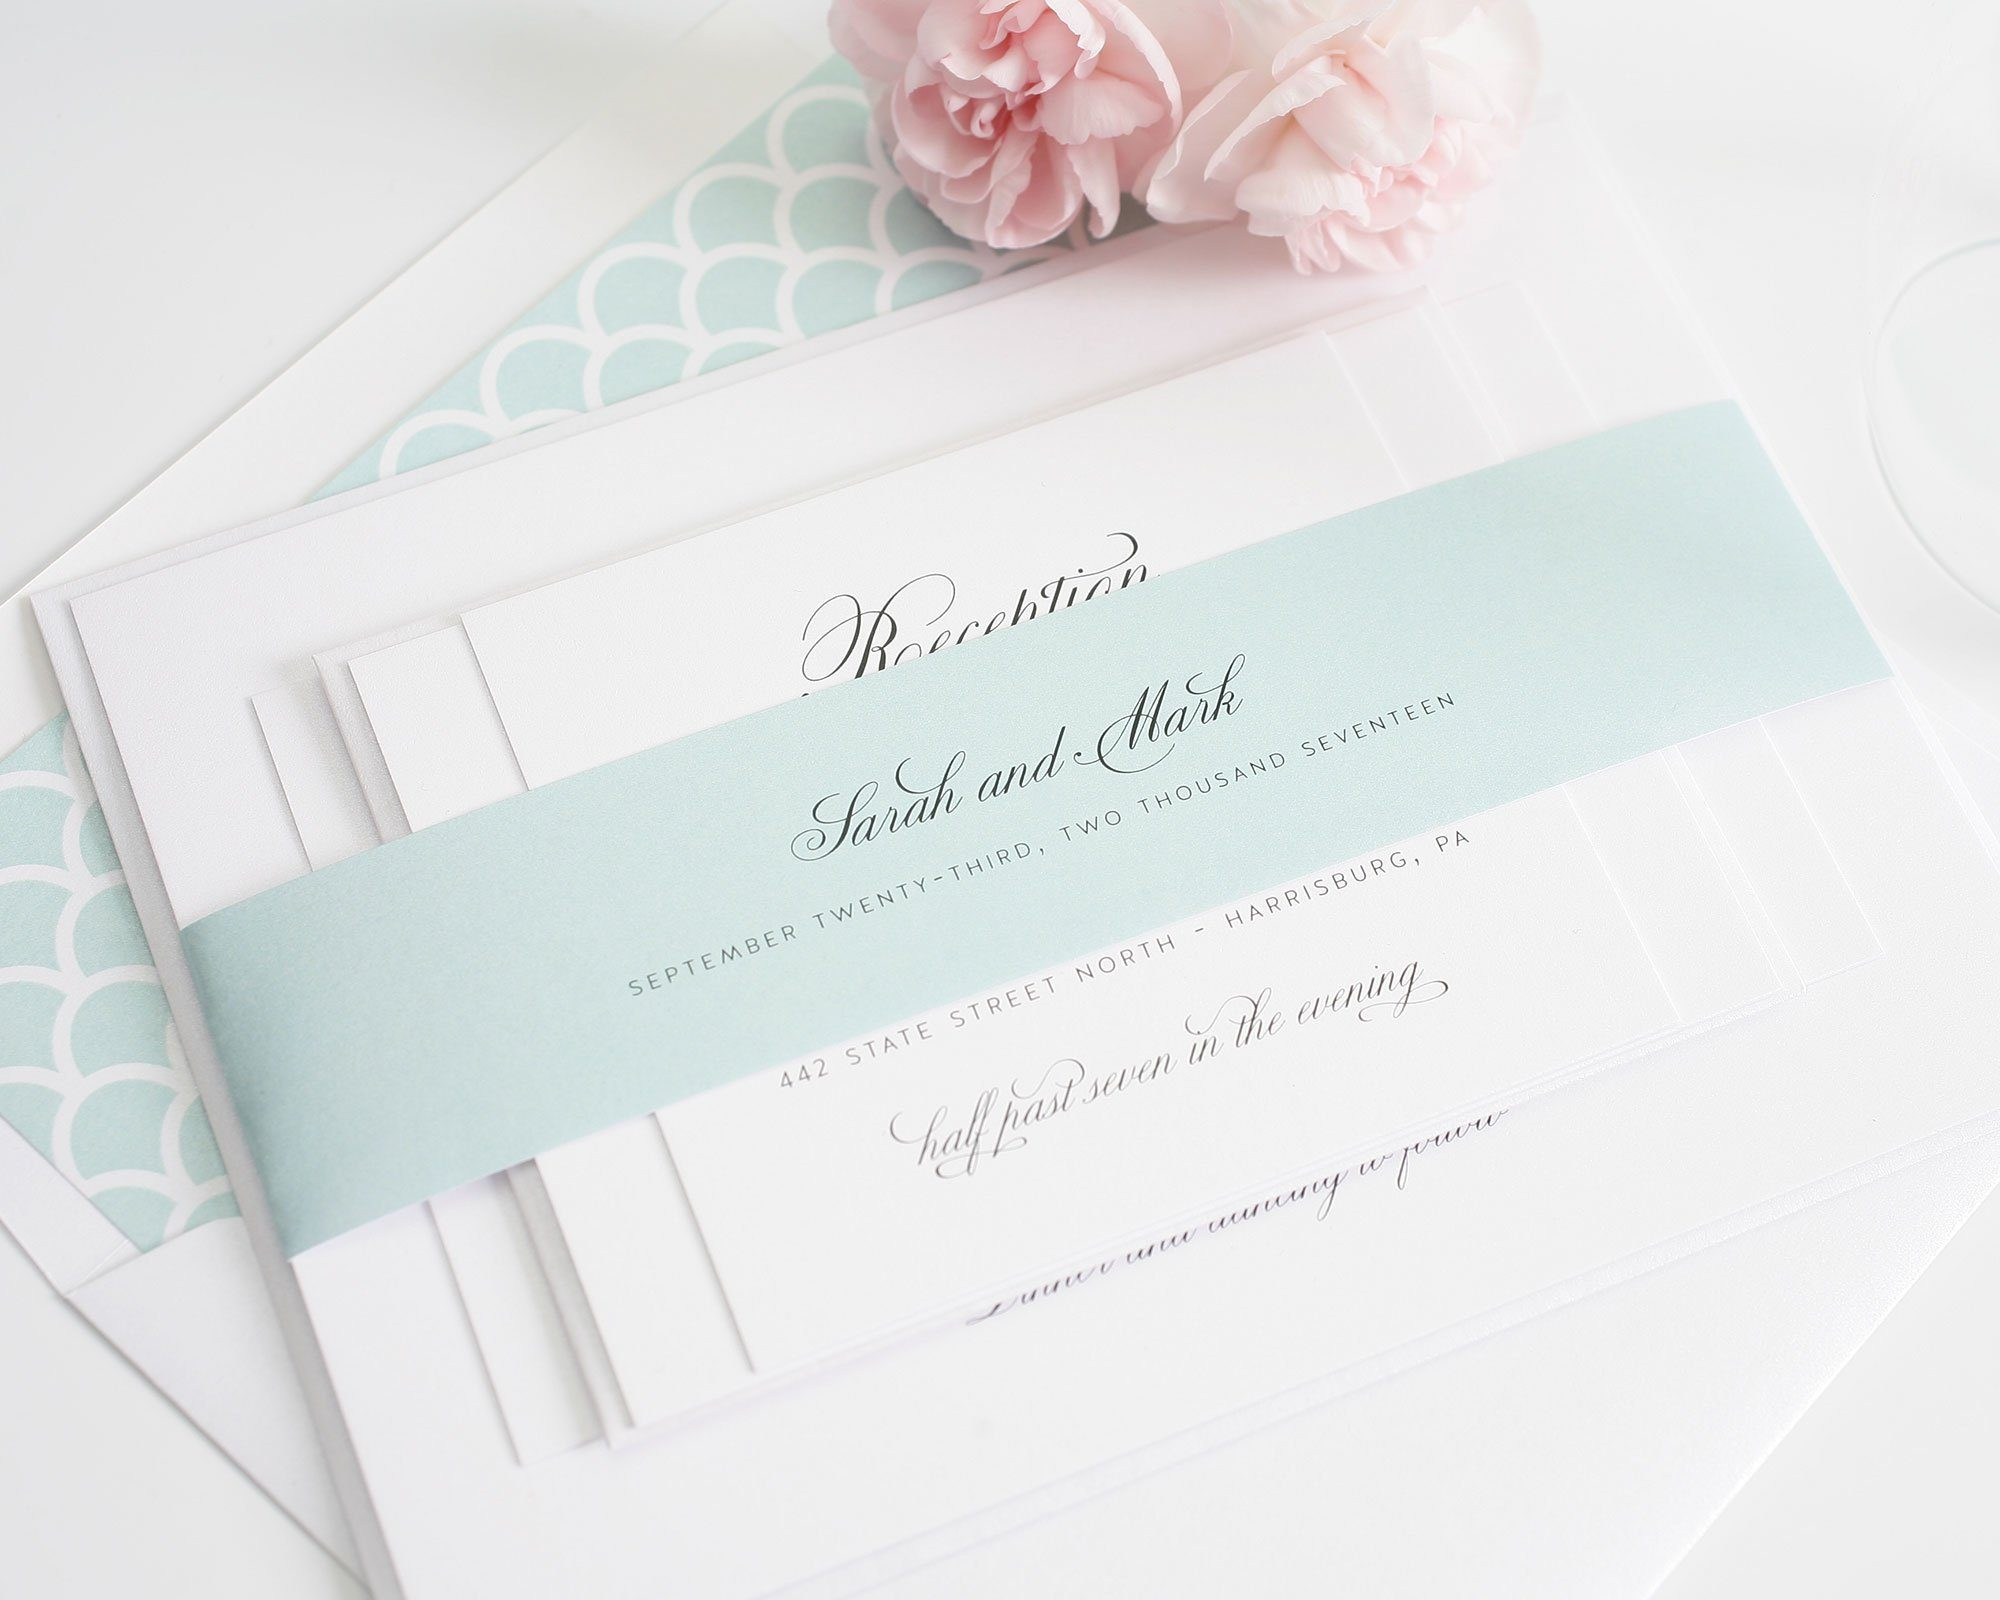 mint + scallop wedding inspiration – wedding invitations, Wedding invitations